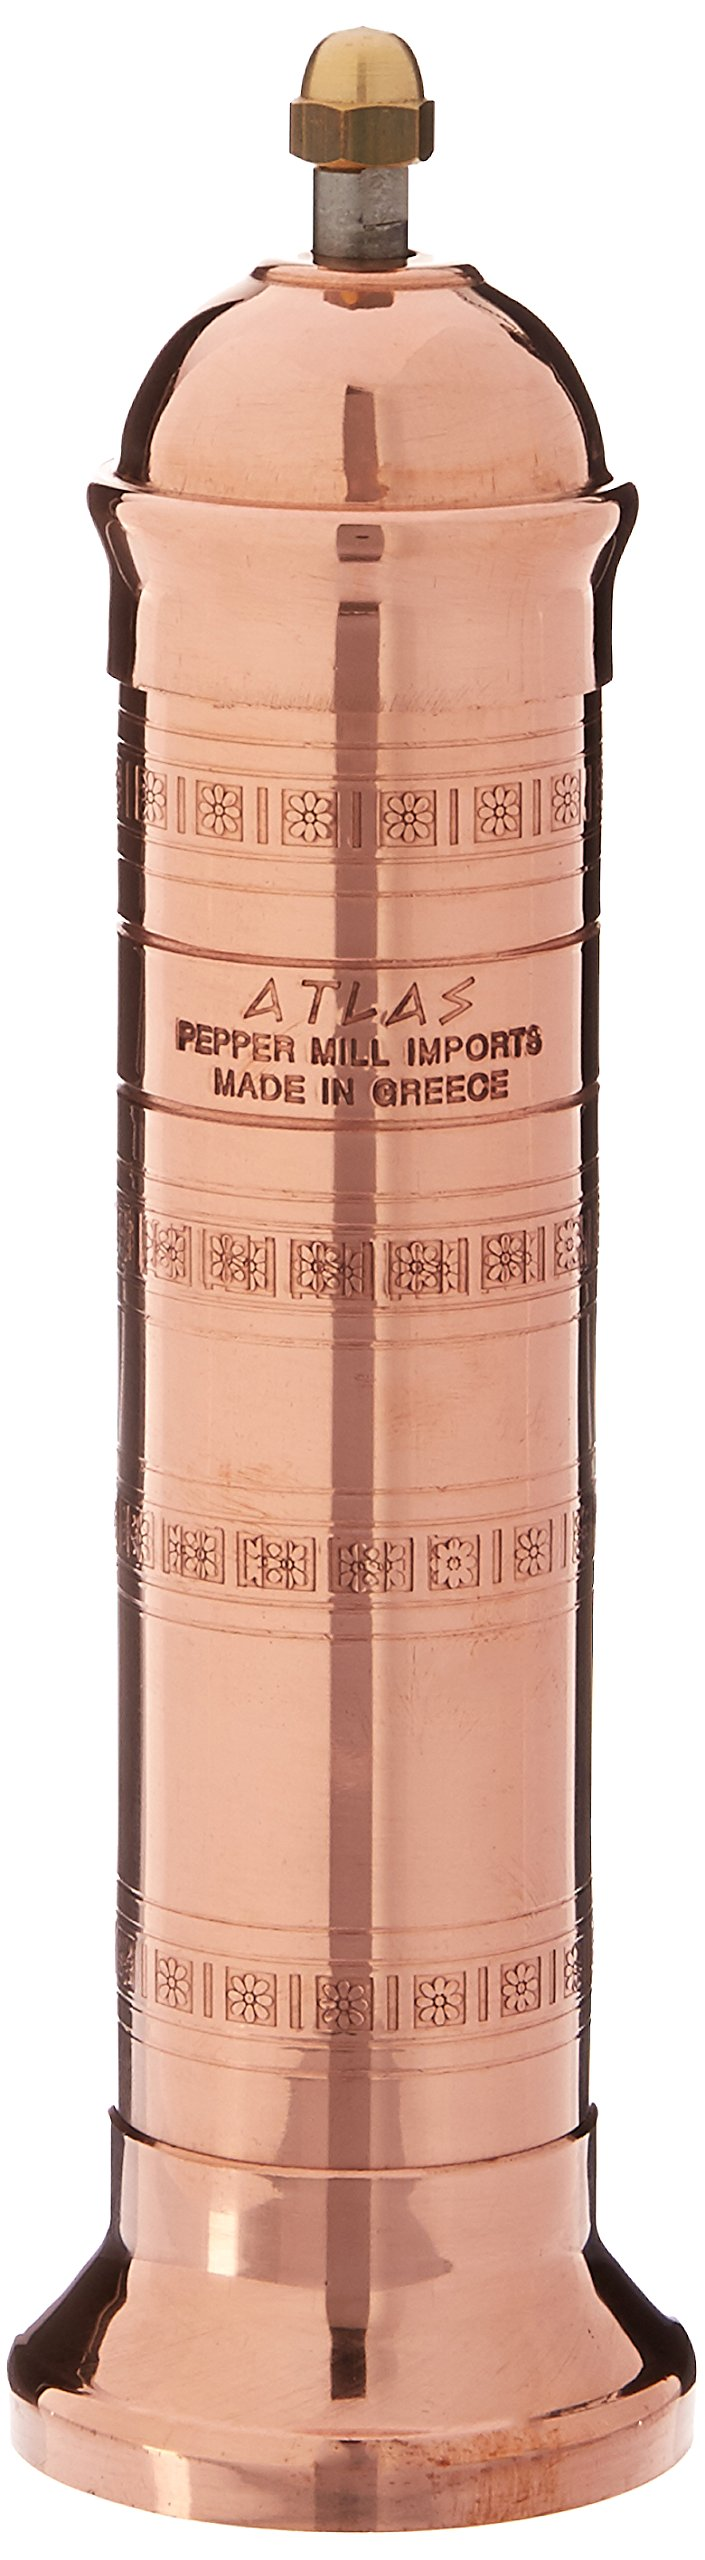 Pepper Mill Imports Atlas Salt Mill, Copper, 8'' by Pepper Mill Imports